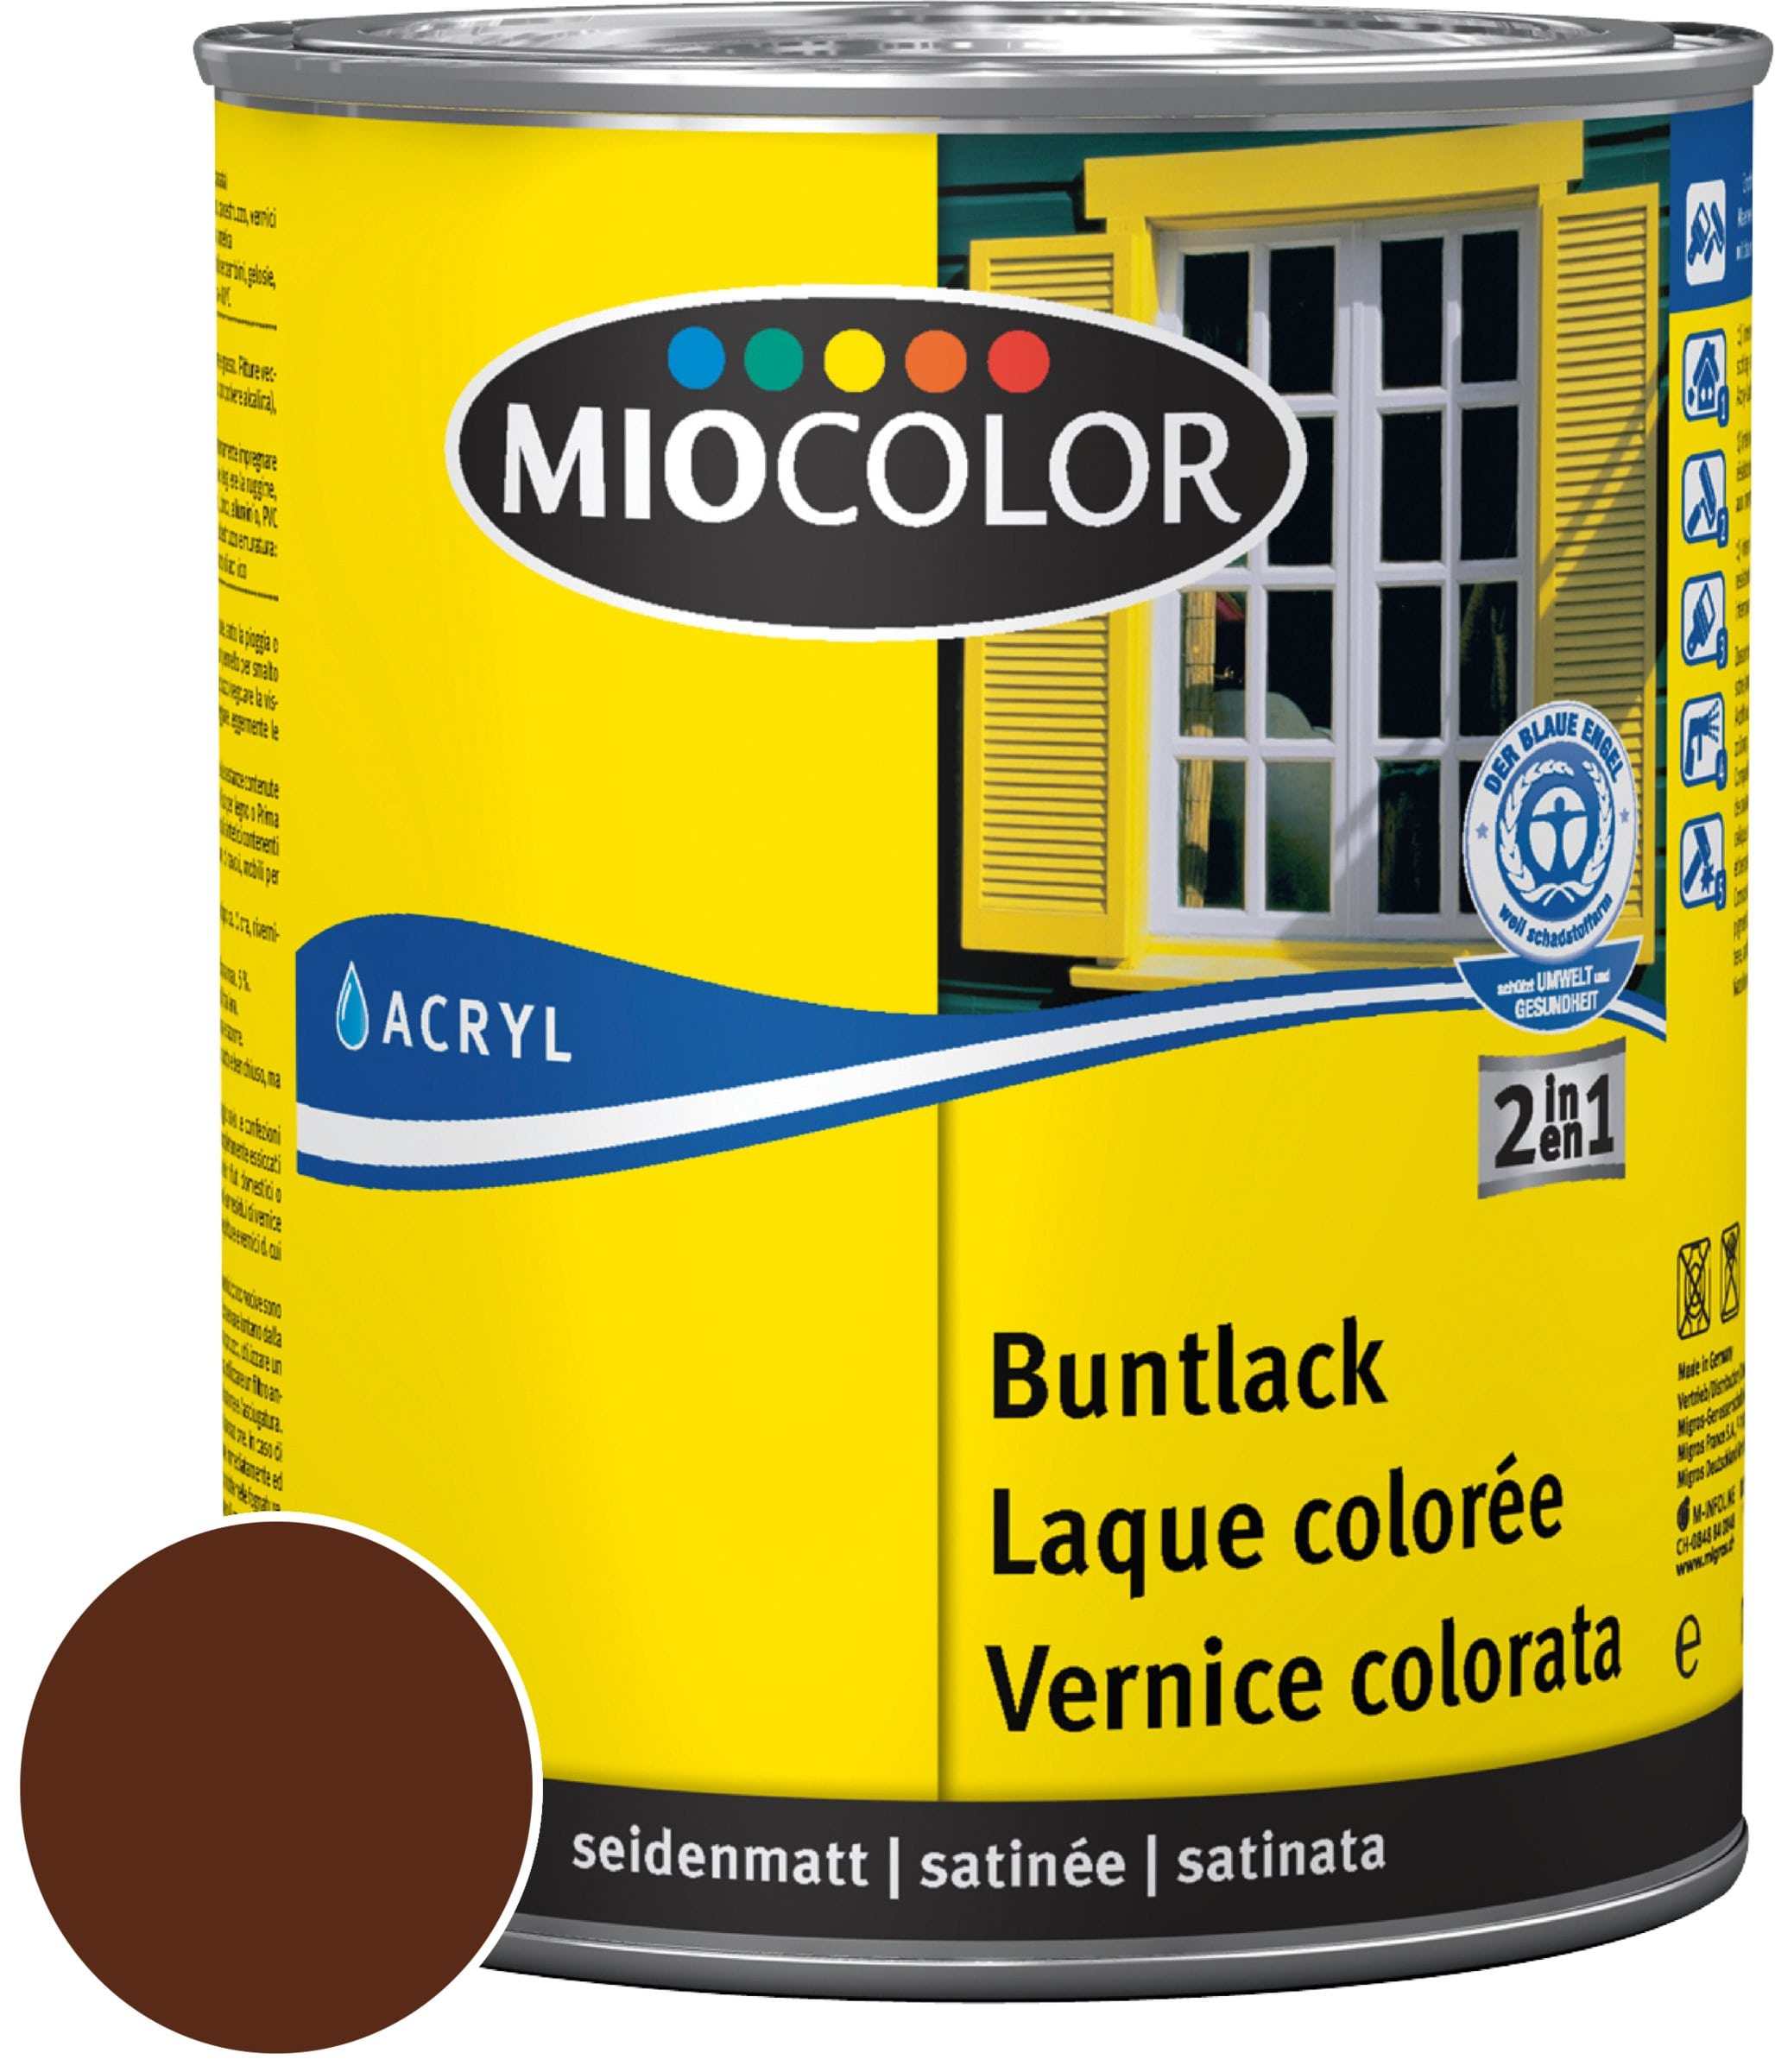 Miocolor Acryl Vernice colorata satinata Marrone cioccolato 750 ml